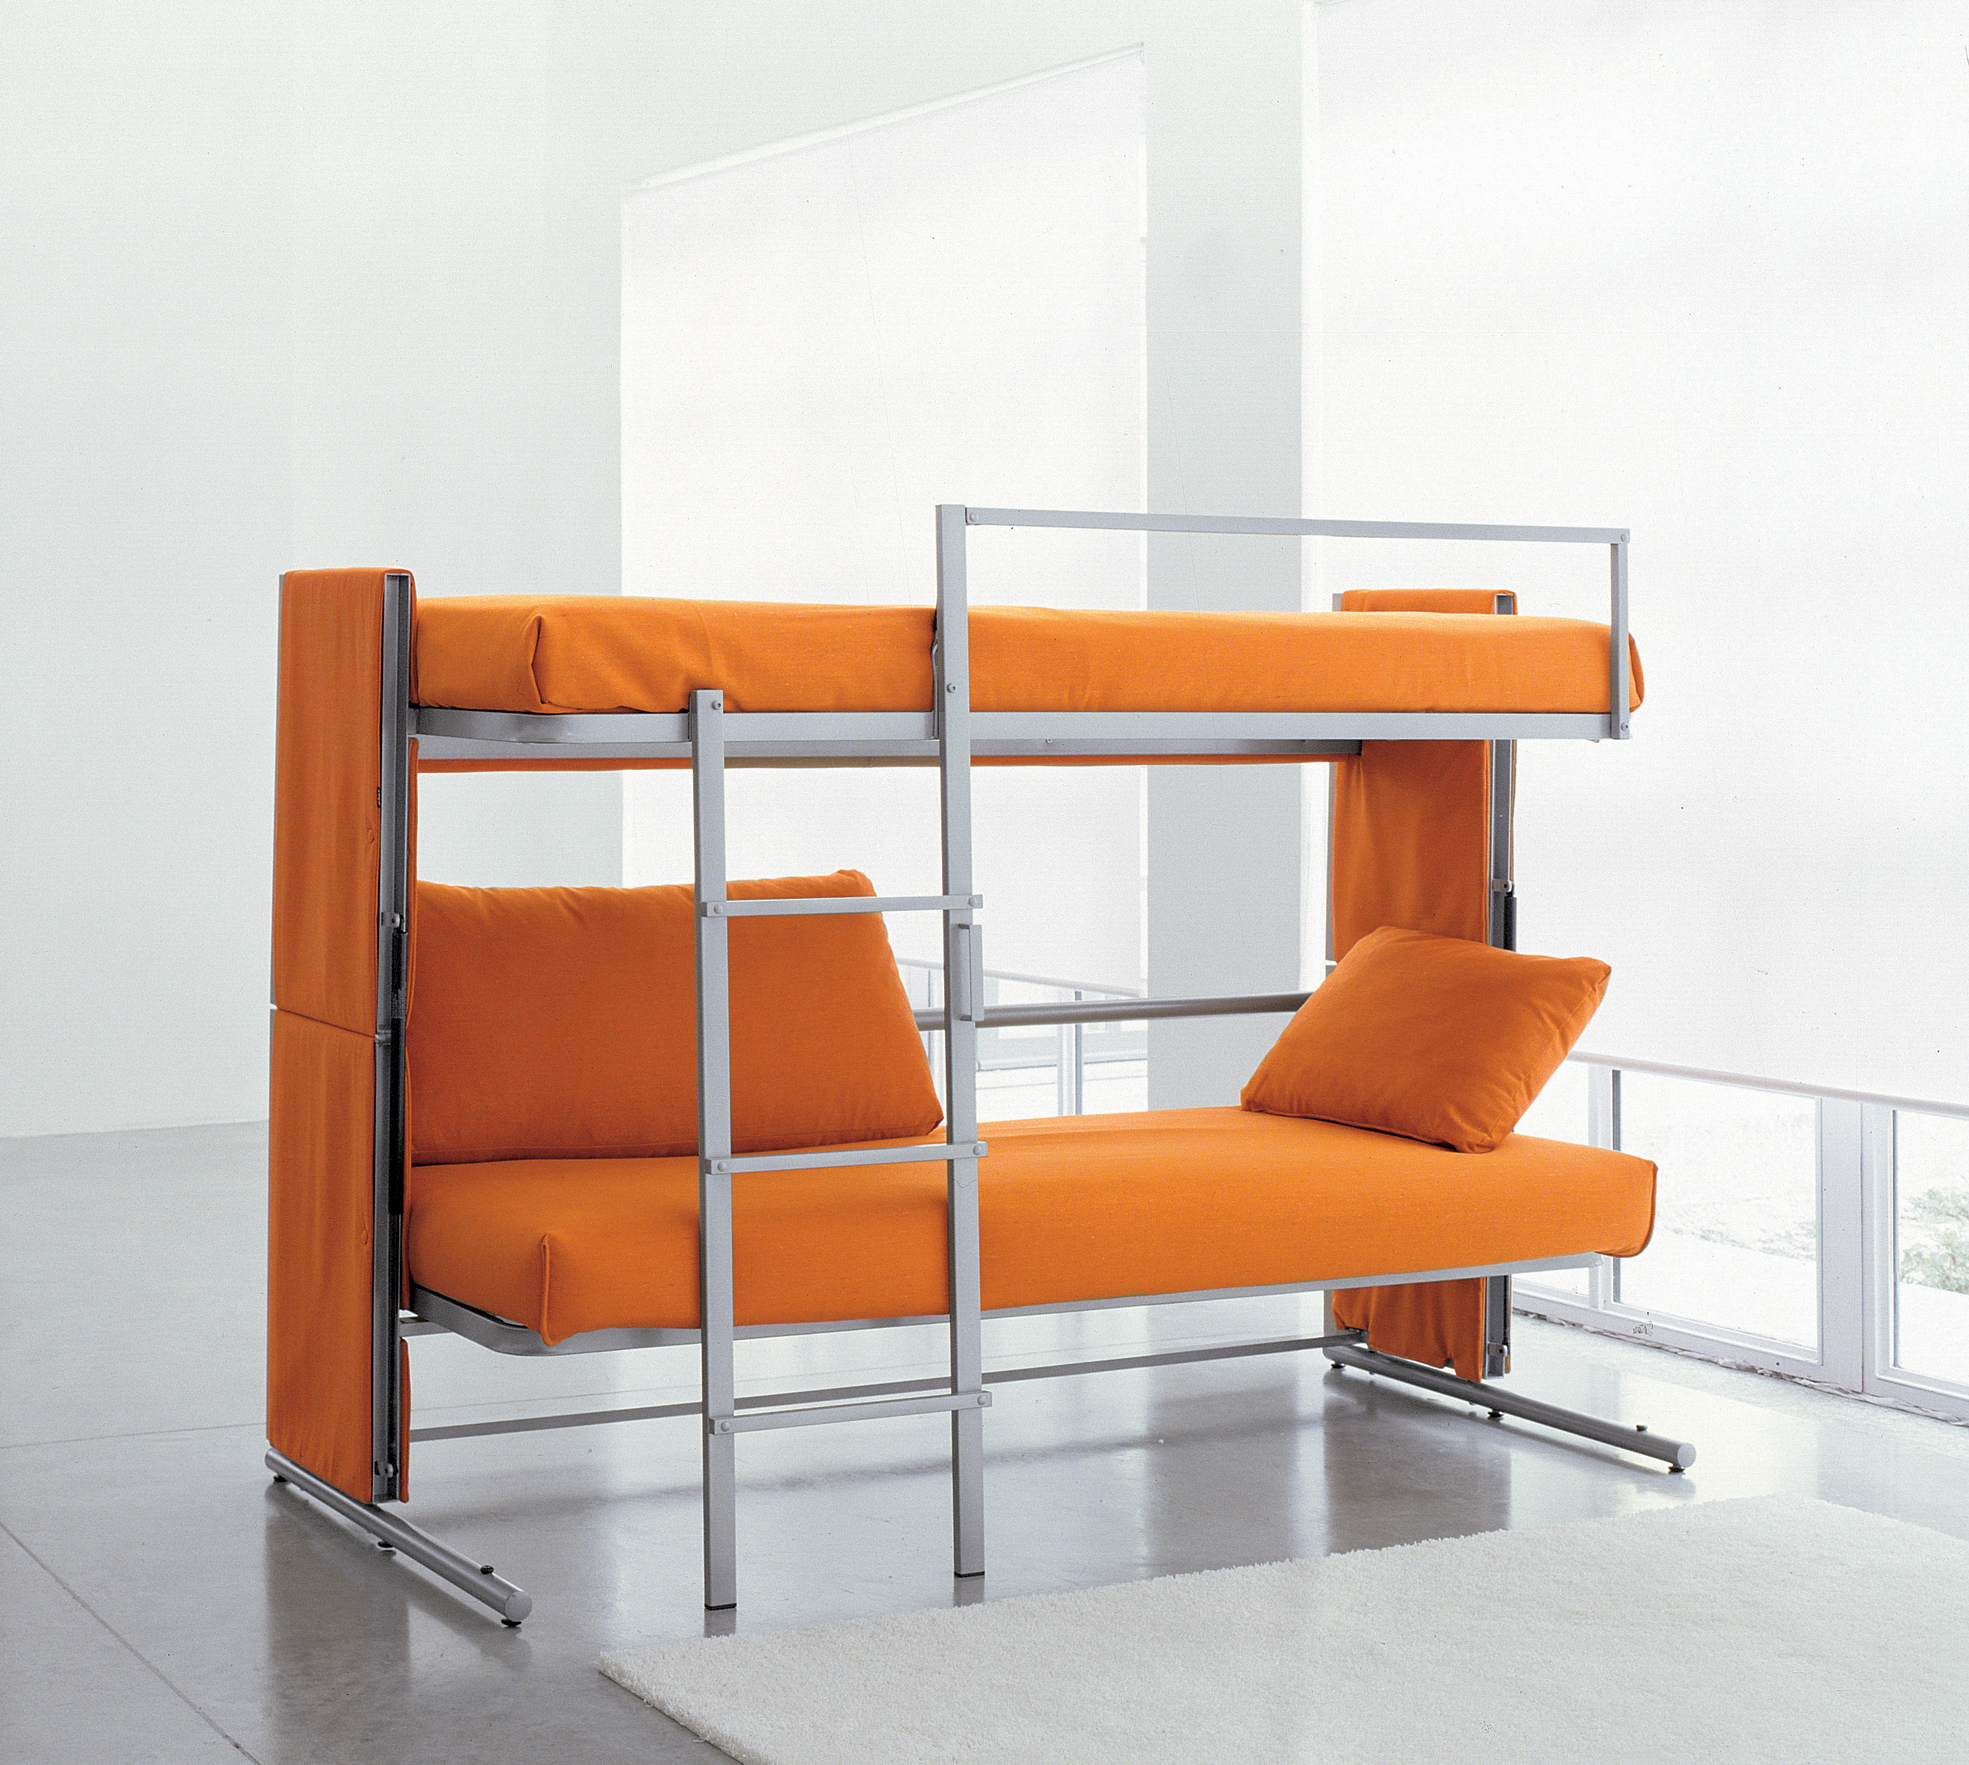 Furniture Design Ideas furniture design ideas images Sofa Bunk Bed